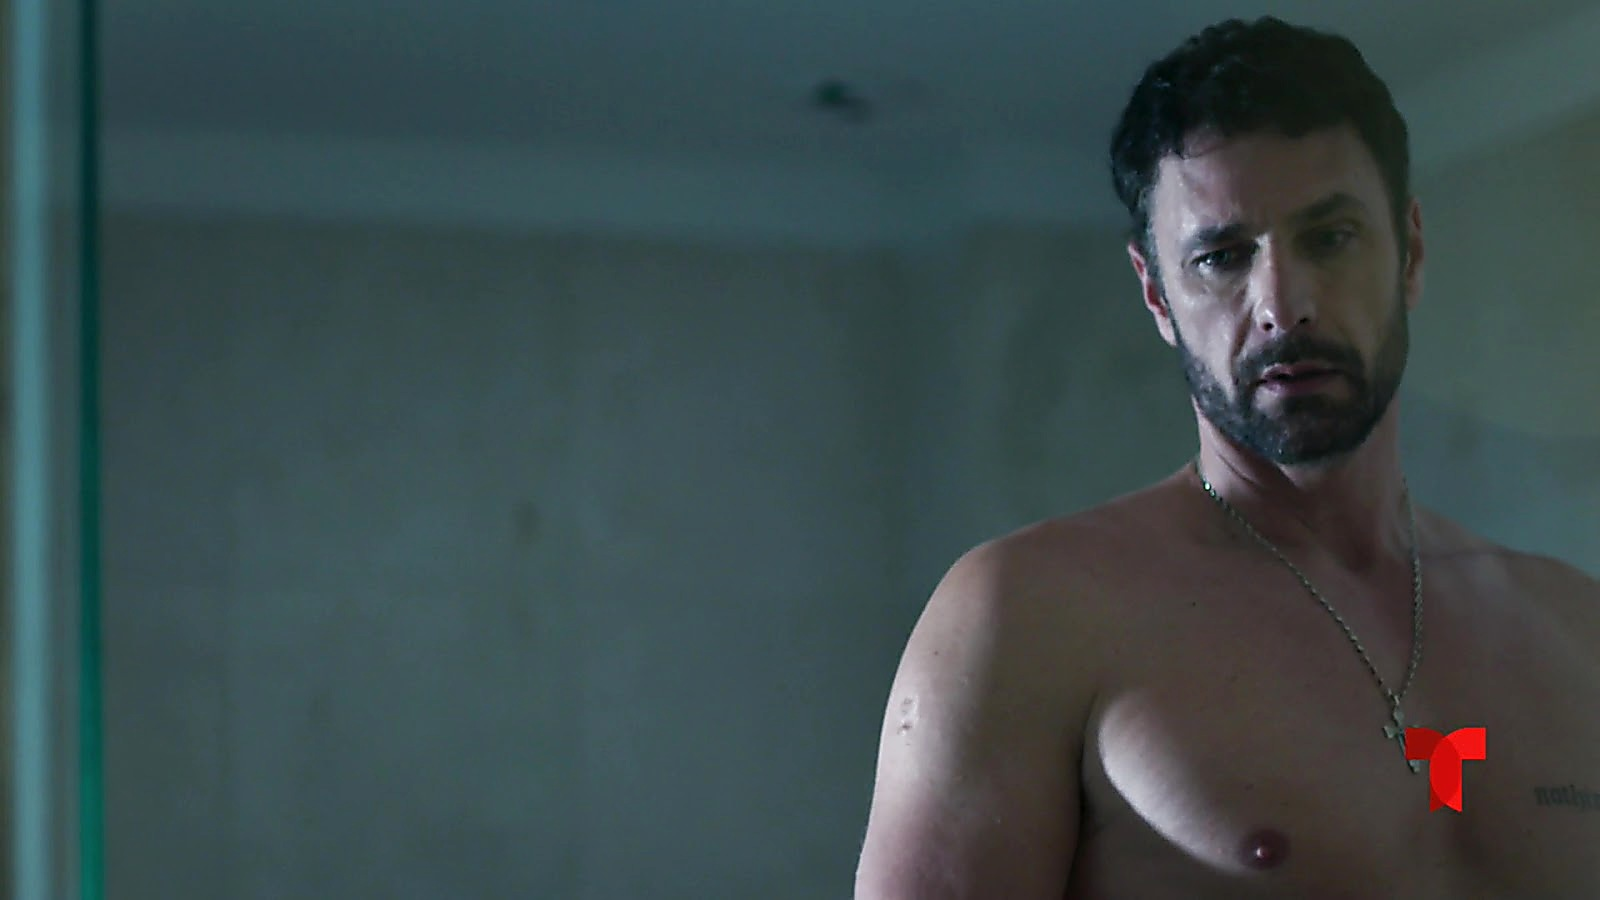 Raoul Bova sexy shirtless scene May 11, 2019, 11am